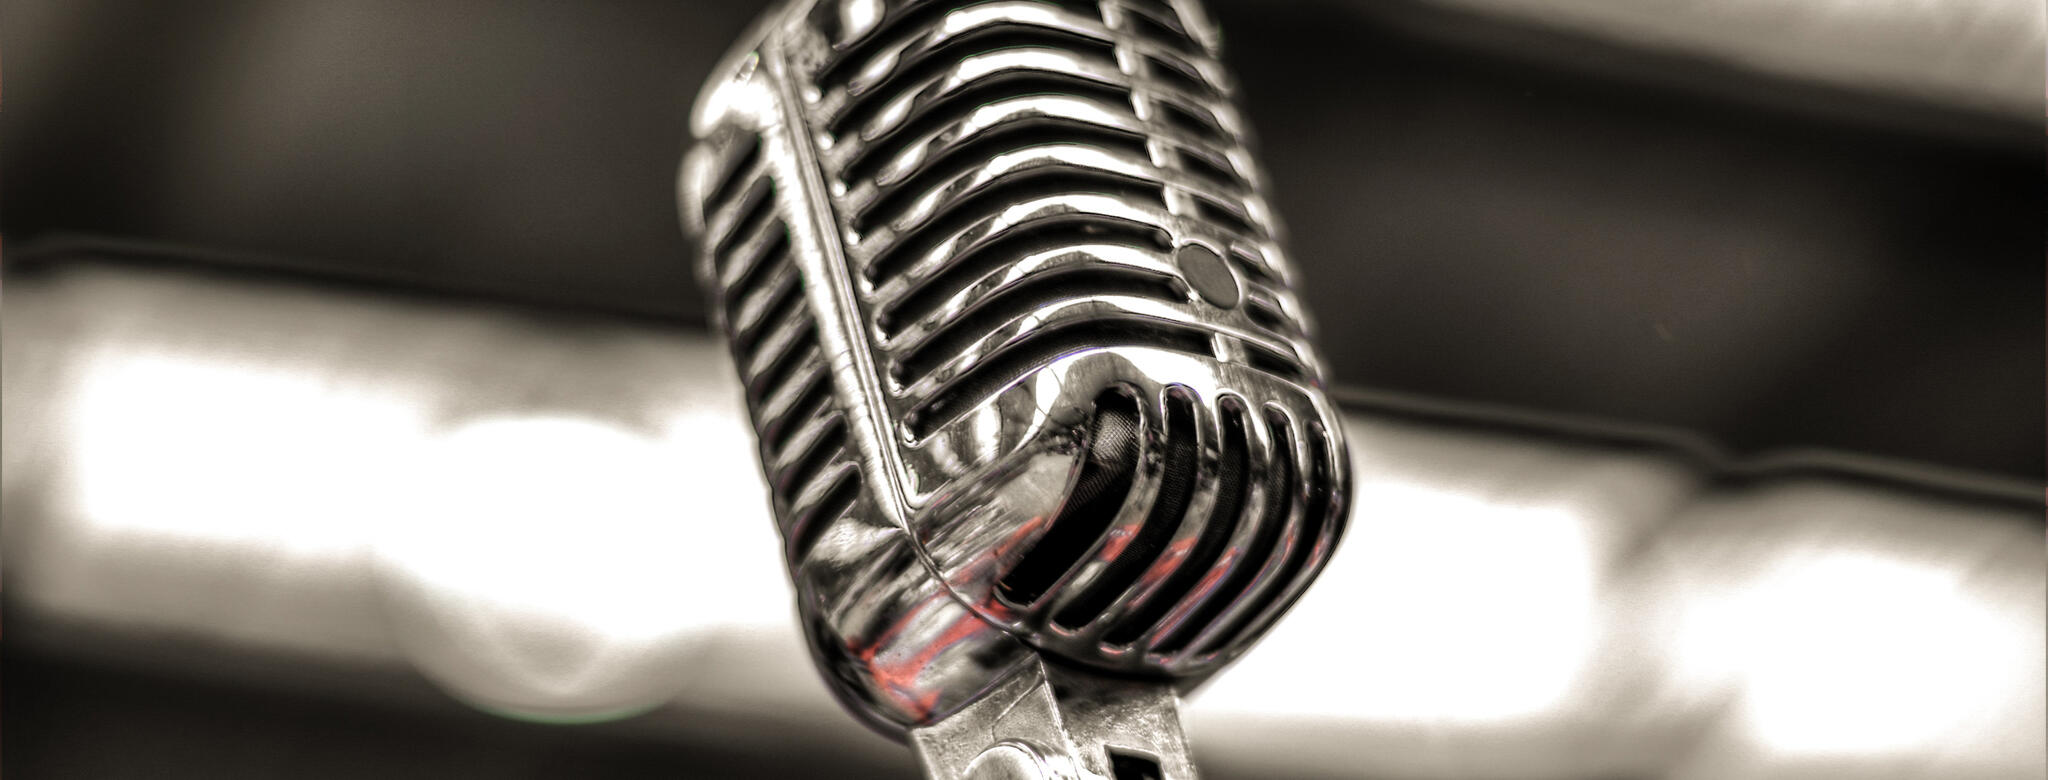 A microphone in front of lights